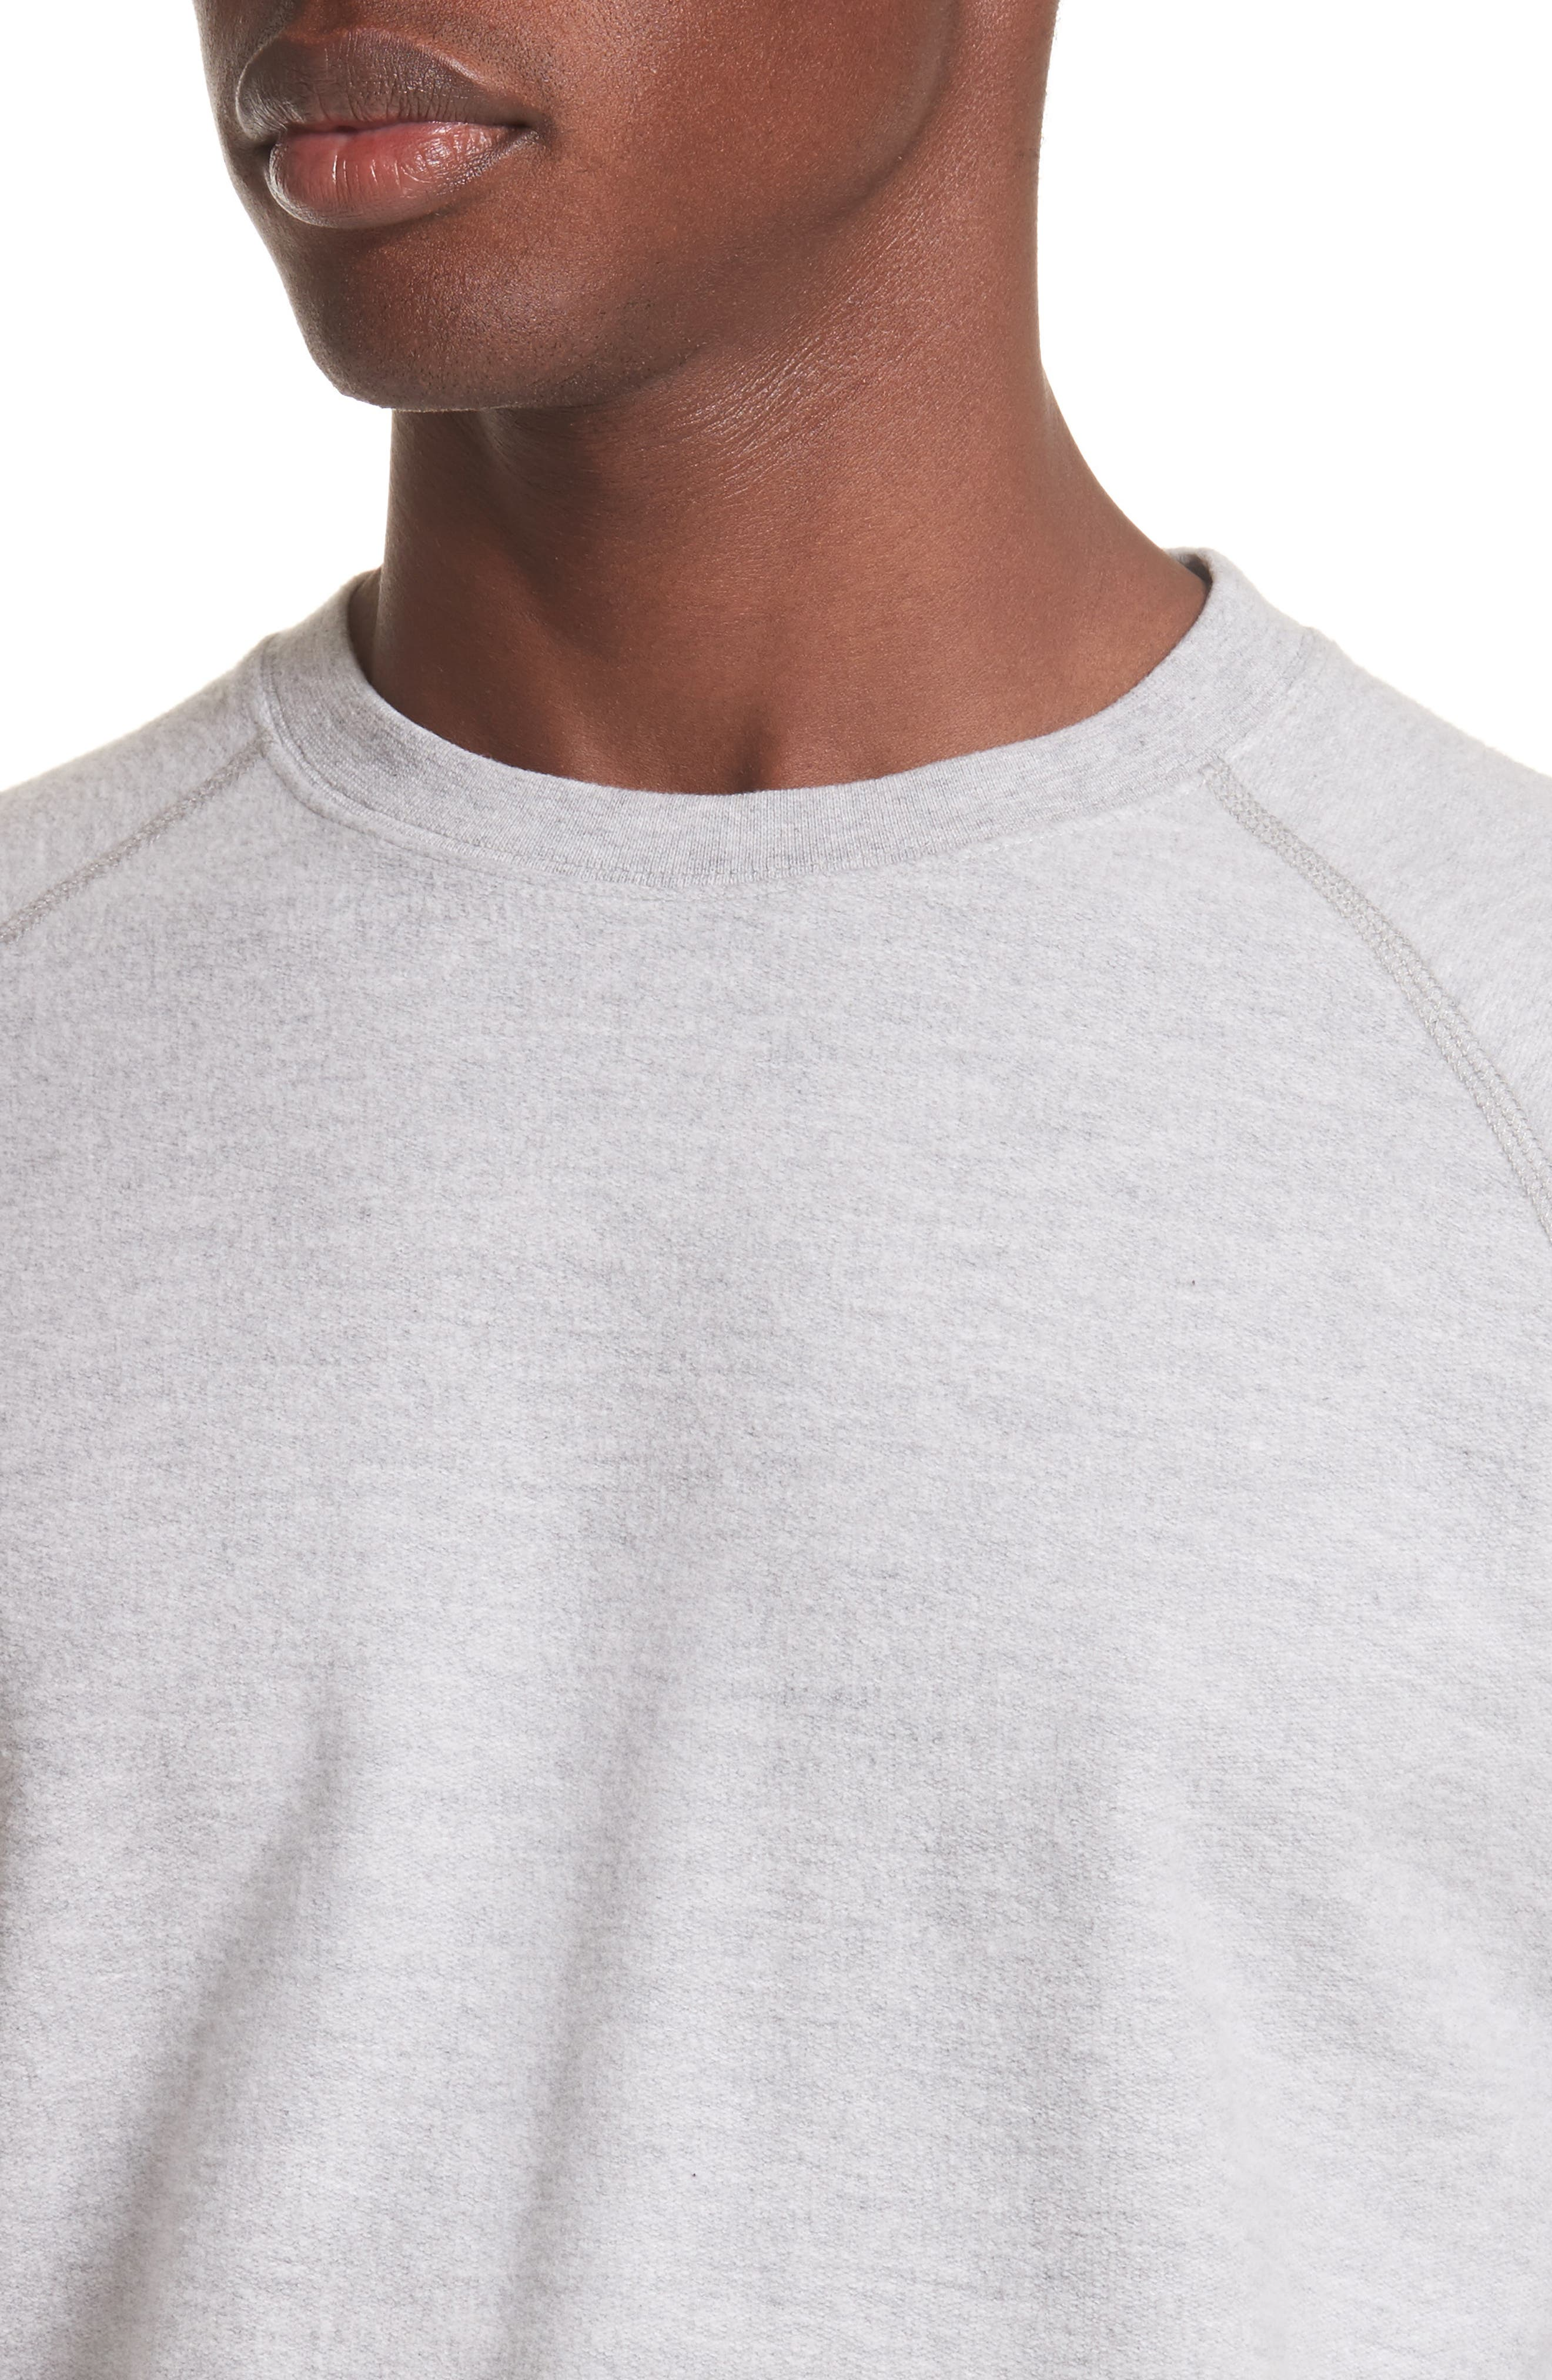 Victor Brushed Cotton T-Shirt,                             Alternate thumbnail 4, color,                             Light Grey